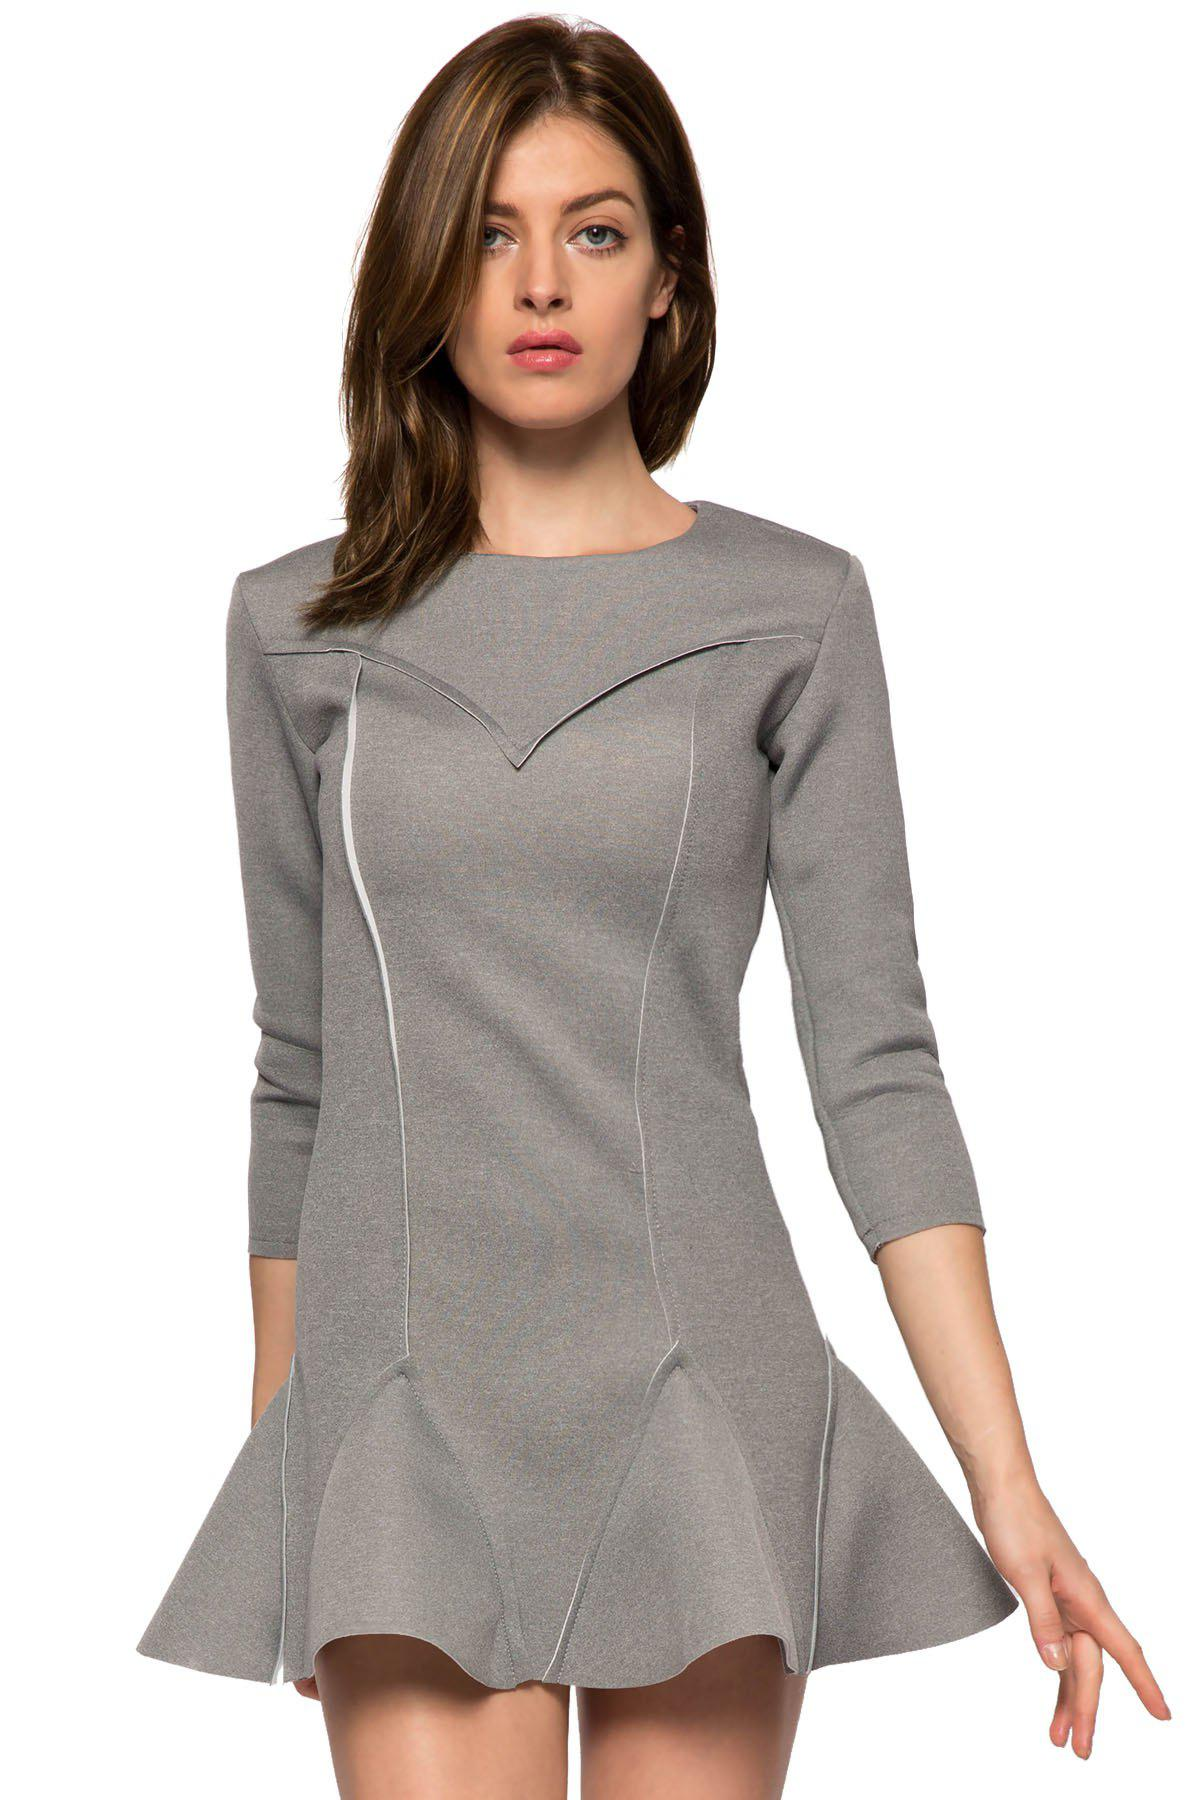 Discount Trendy Style Round Collar 3/4 Sleeve Solid Color Ruffles Splicing Women's Dress